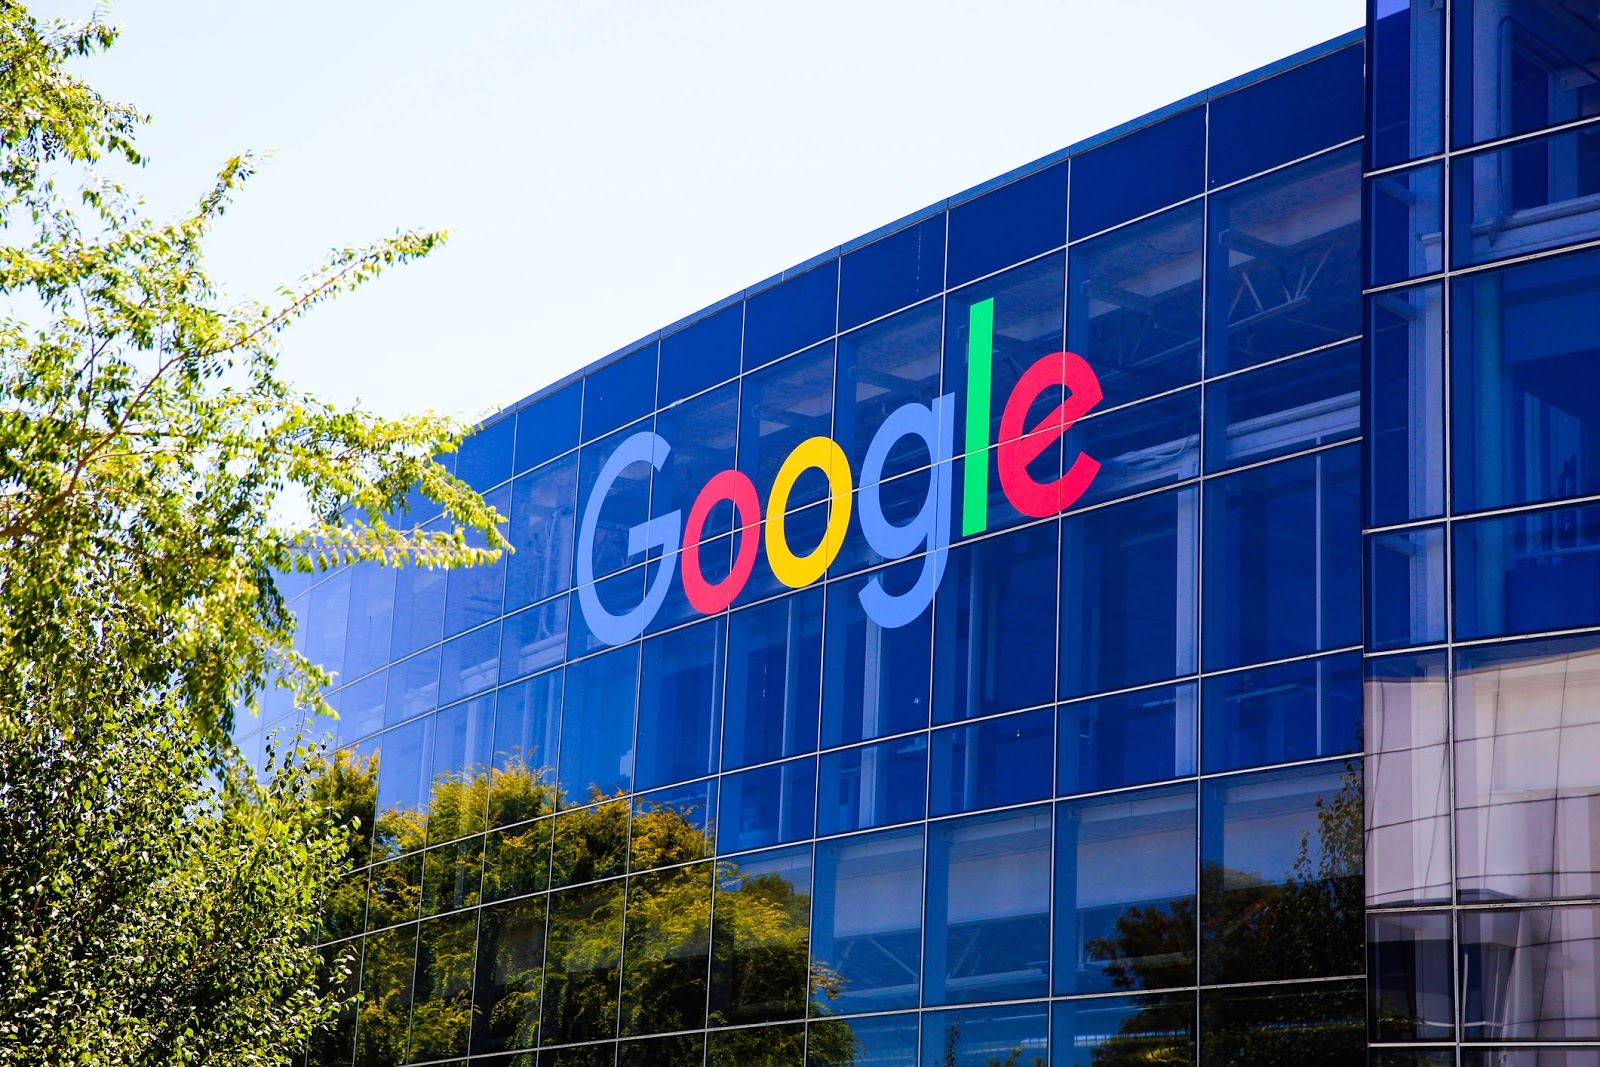 Google Unveils Auto-delete For Web Activity And Data Usage